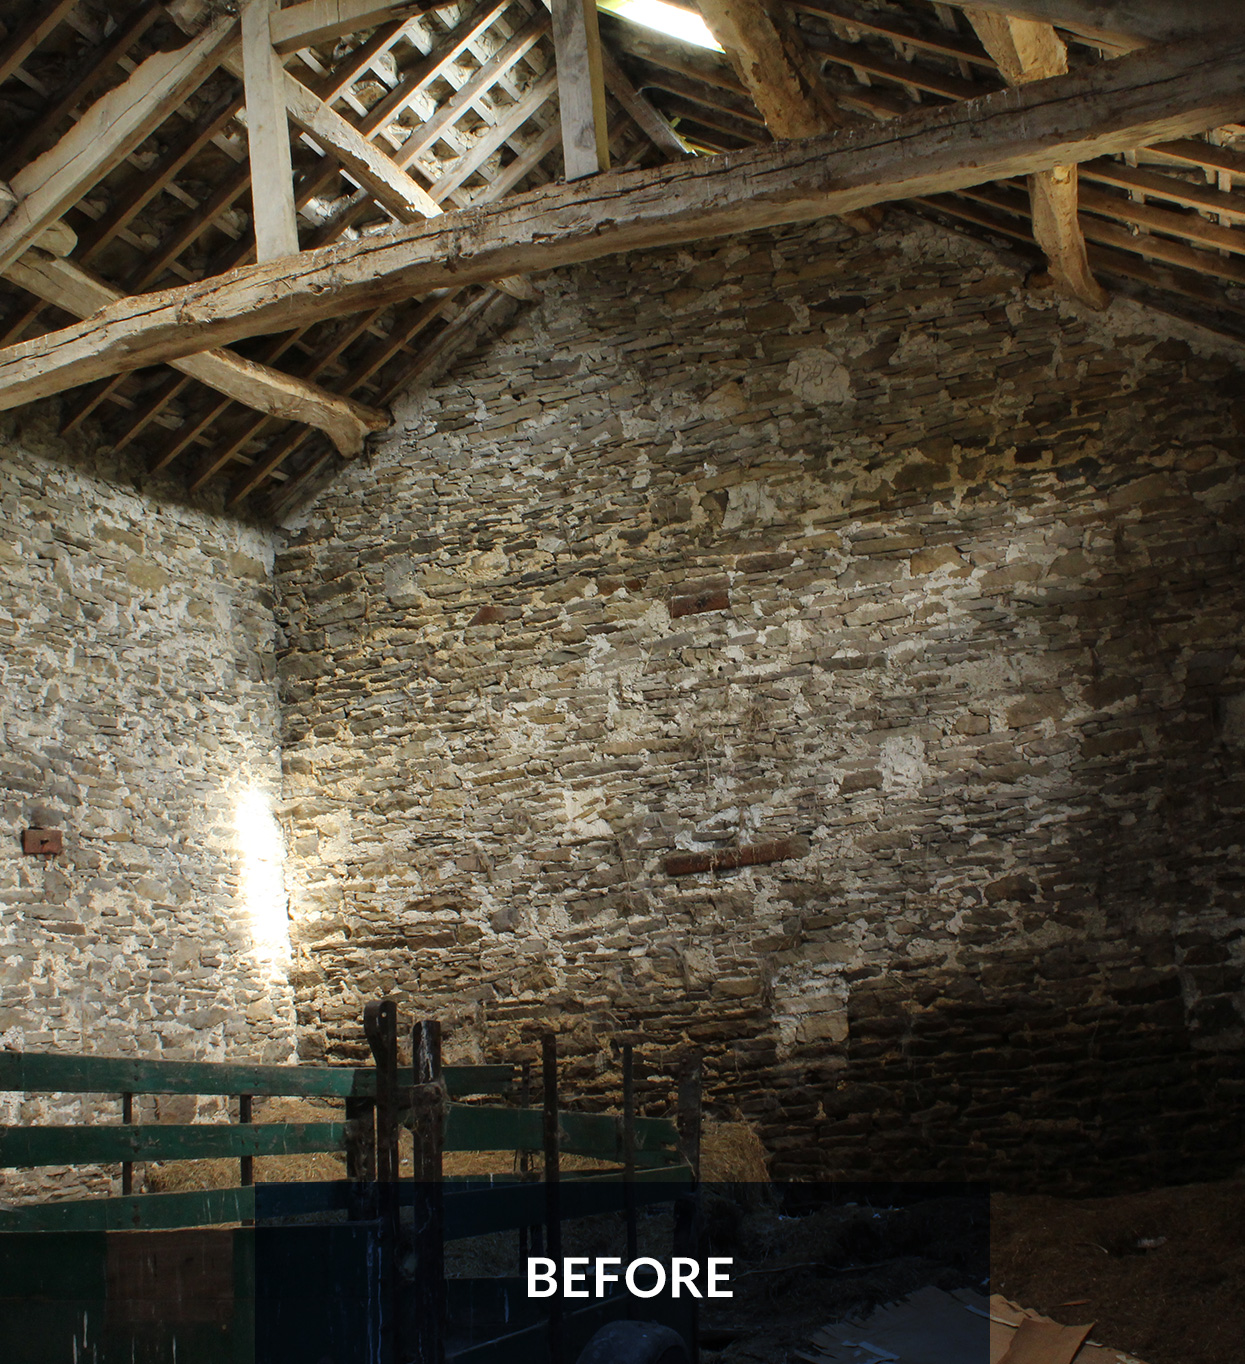 Higher Blaitwaite Barn - Before